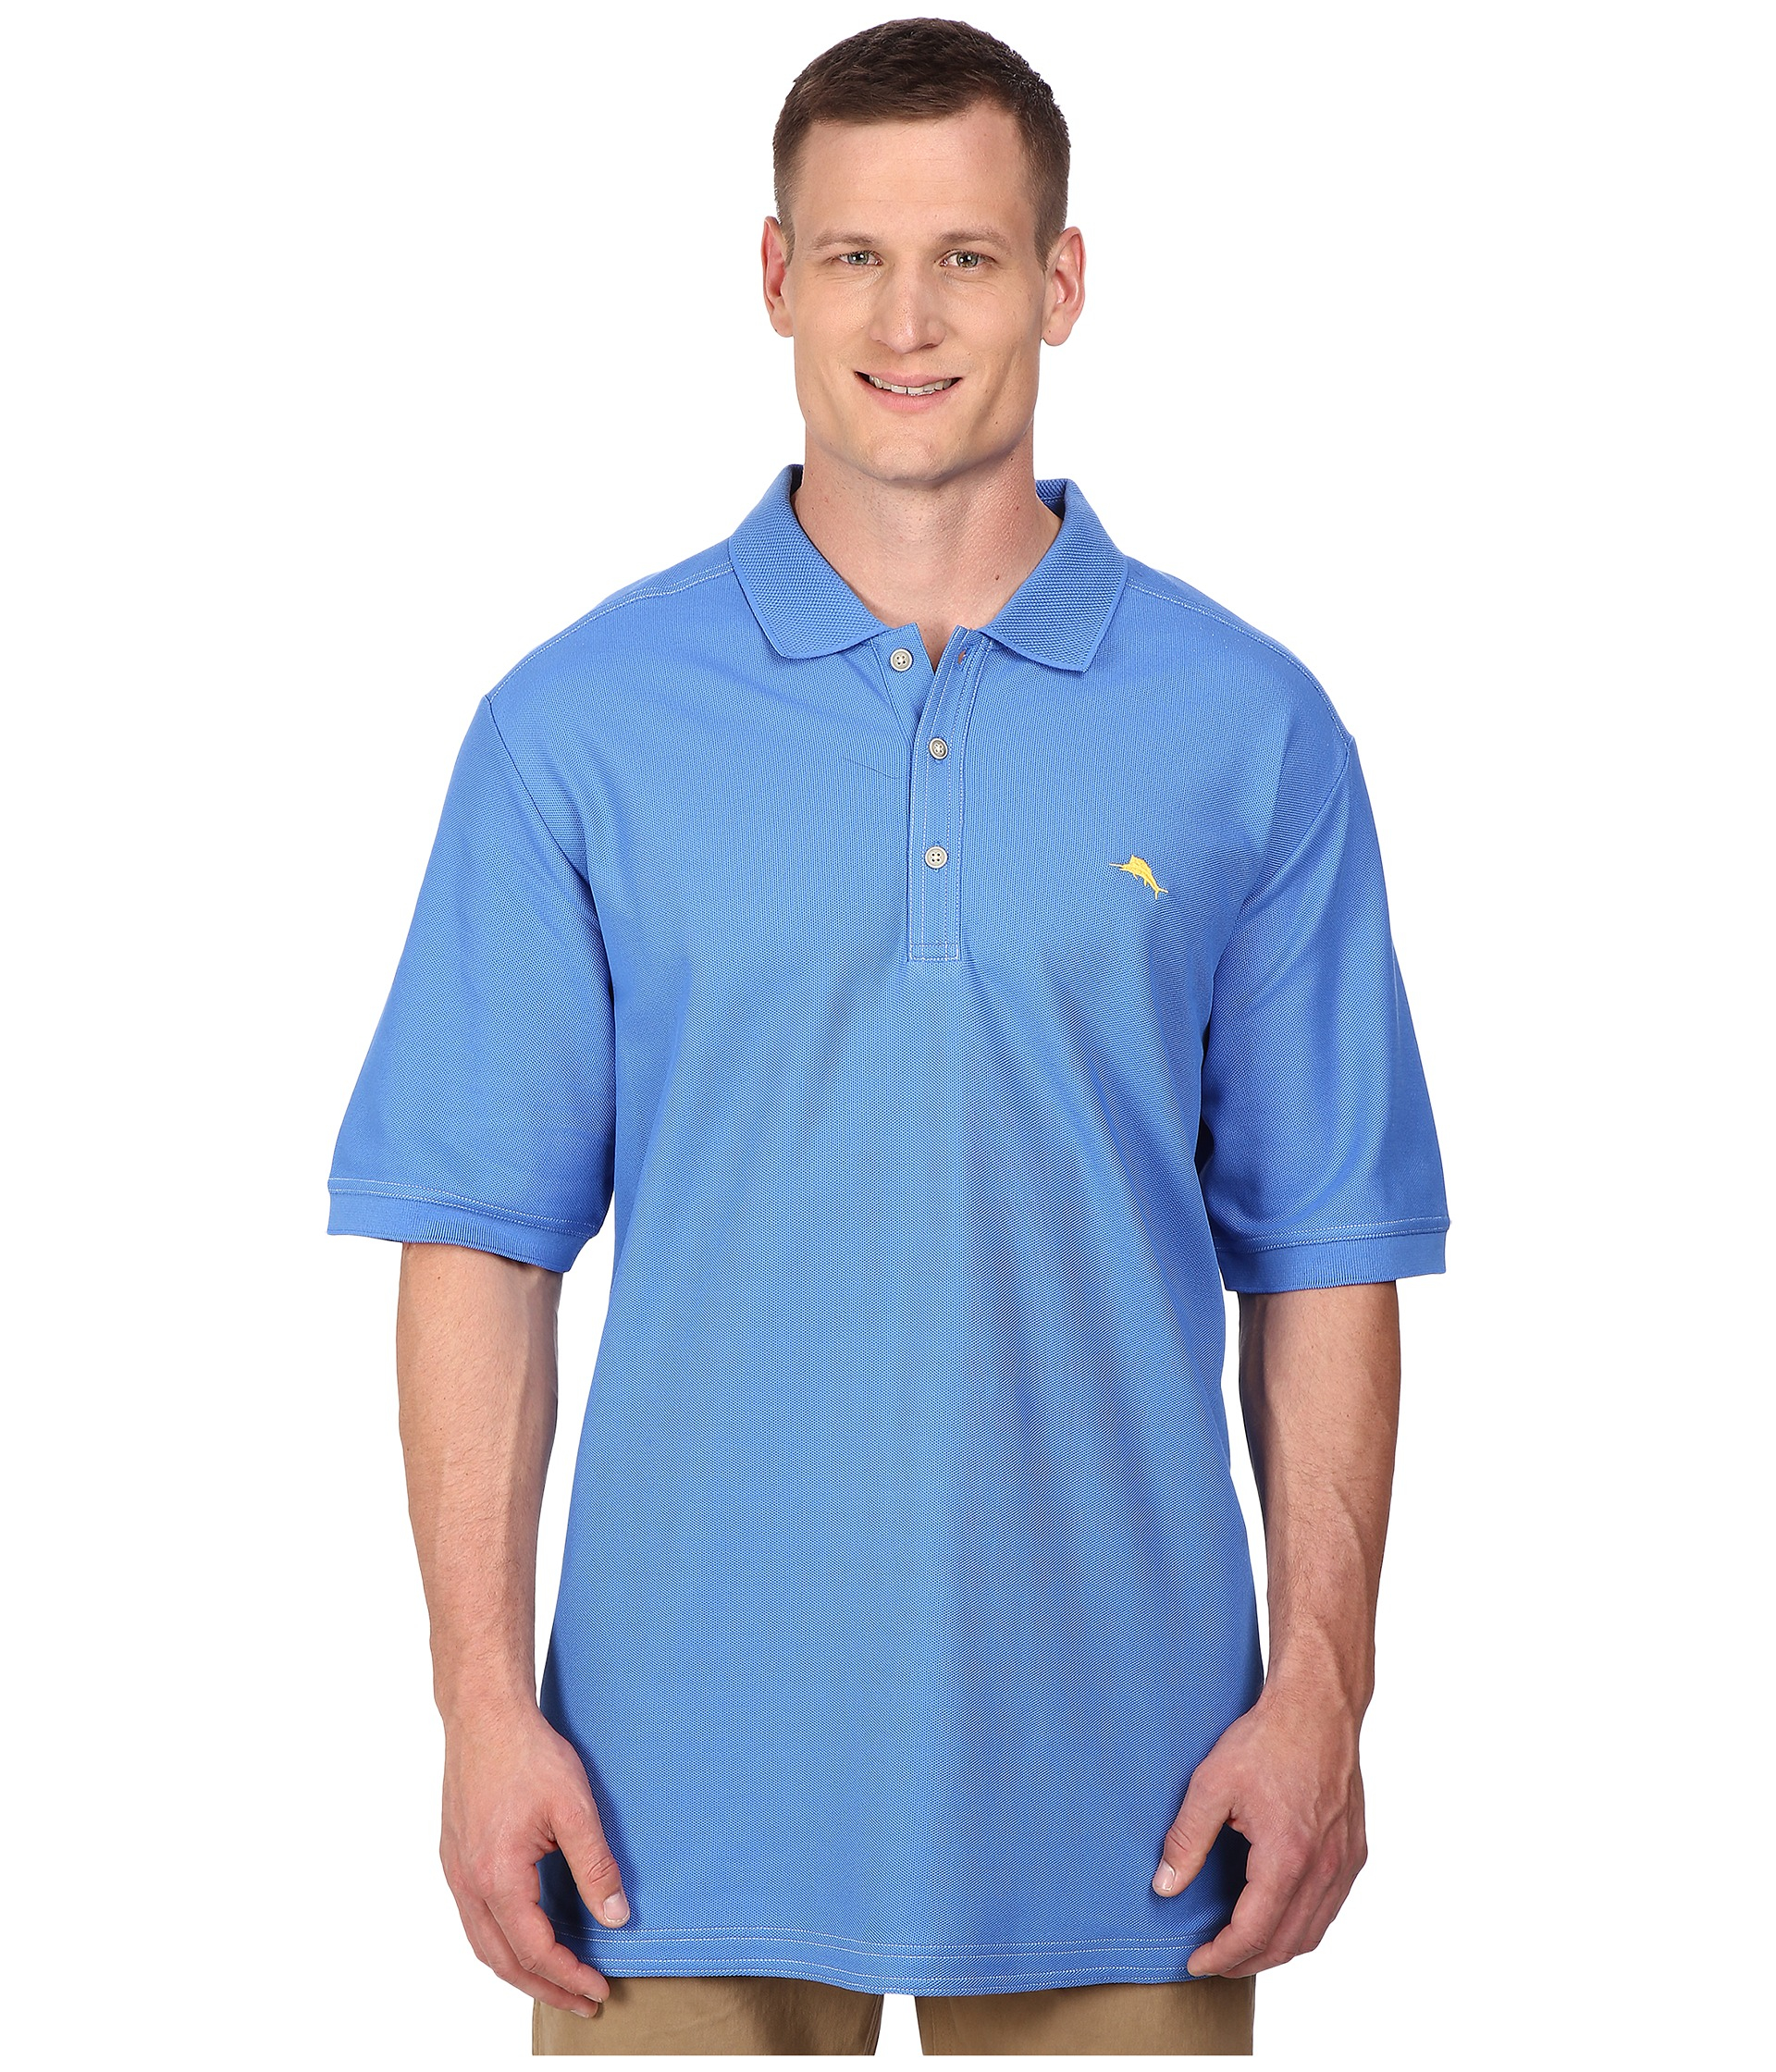 7aaa5804 Polo Shirts 3xl Tall – EDGE Engineering and Consulting Limited